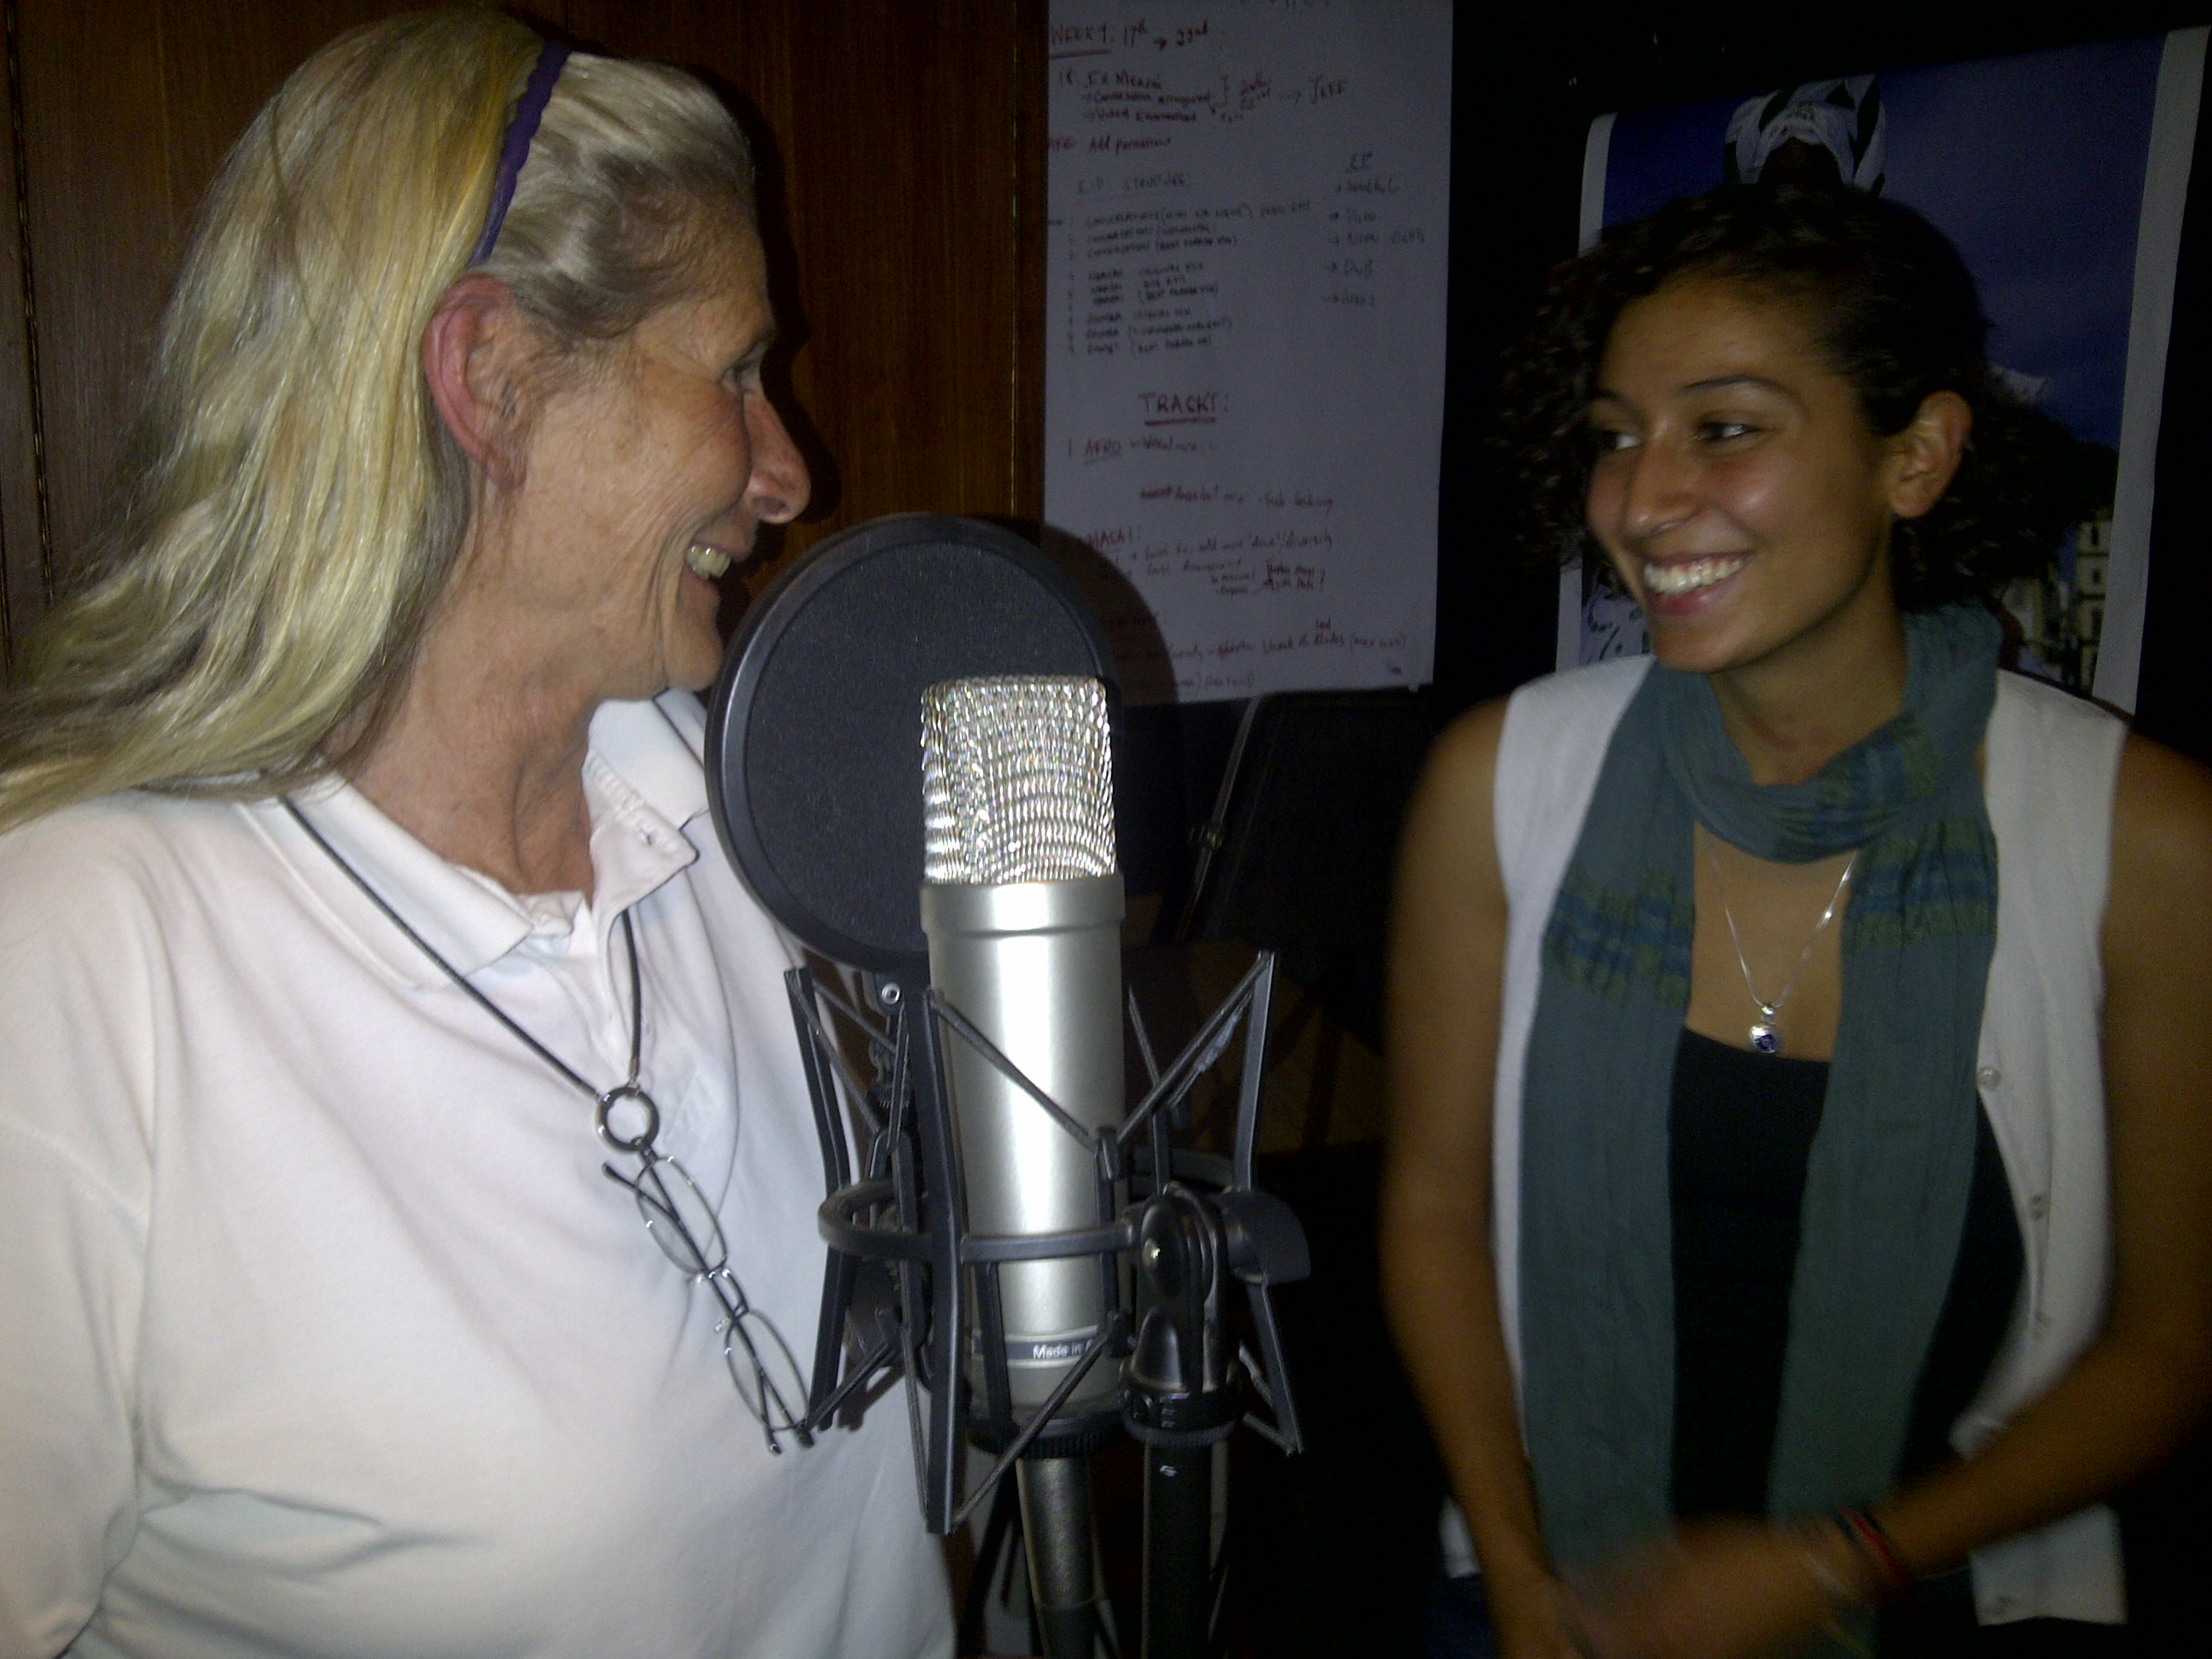 Caption: Annie Olivecrona in recording studio with Elleni Stephanou, Credit: Paula Kahumbu